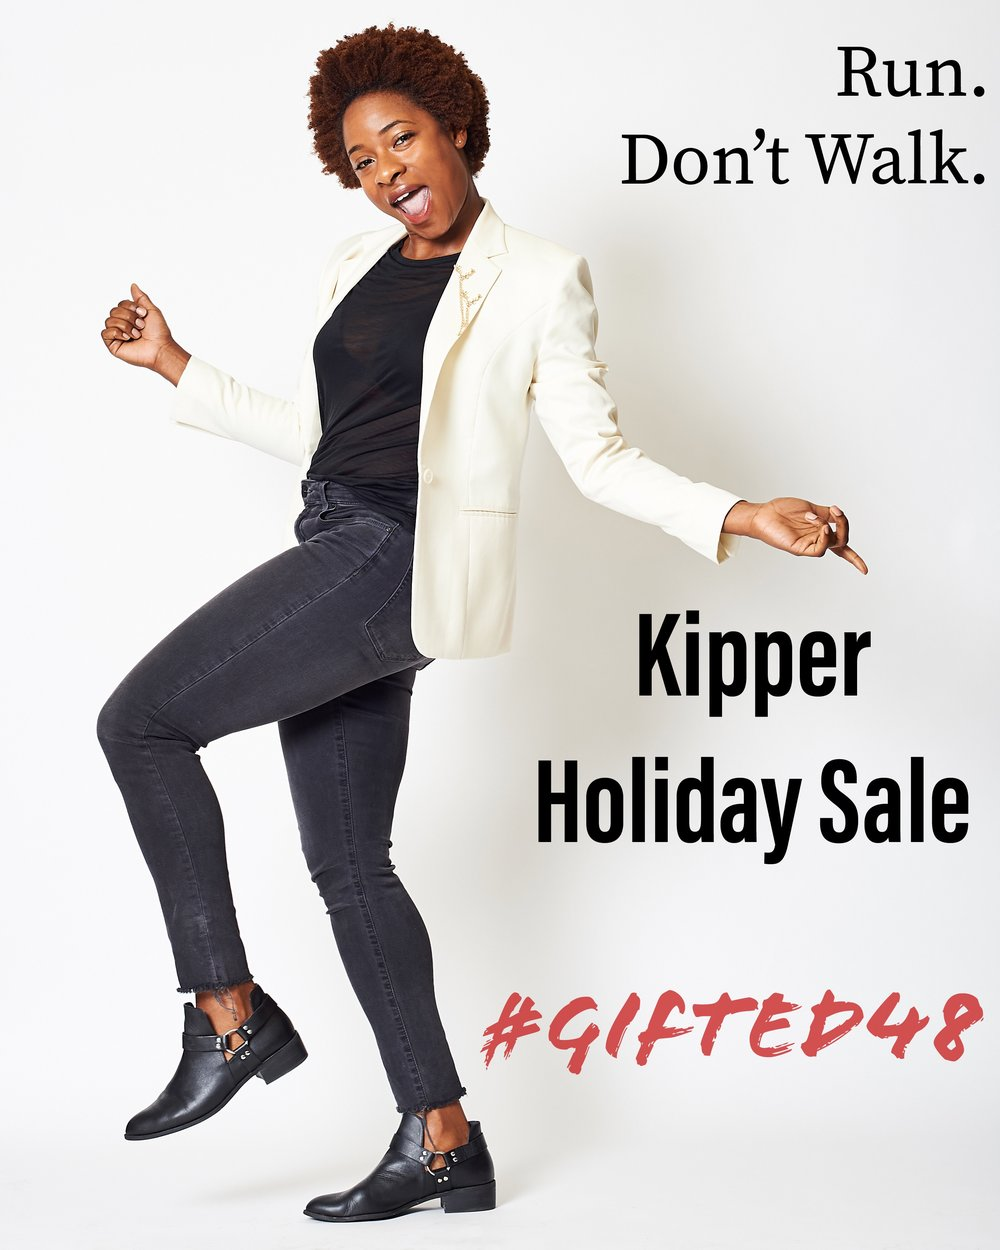 Enter code GIFTED48 for 1)  15% Off all Holiday Collections  2) Buy 1, Get 1 50% Off Site Wide at Kipper SF  - Sale ends Wednesday night.